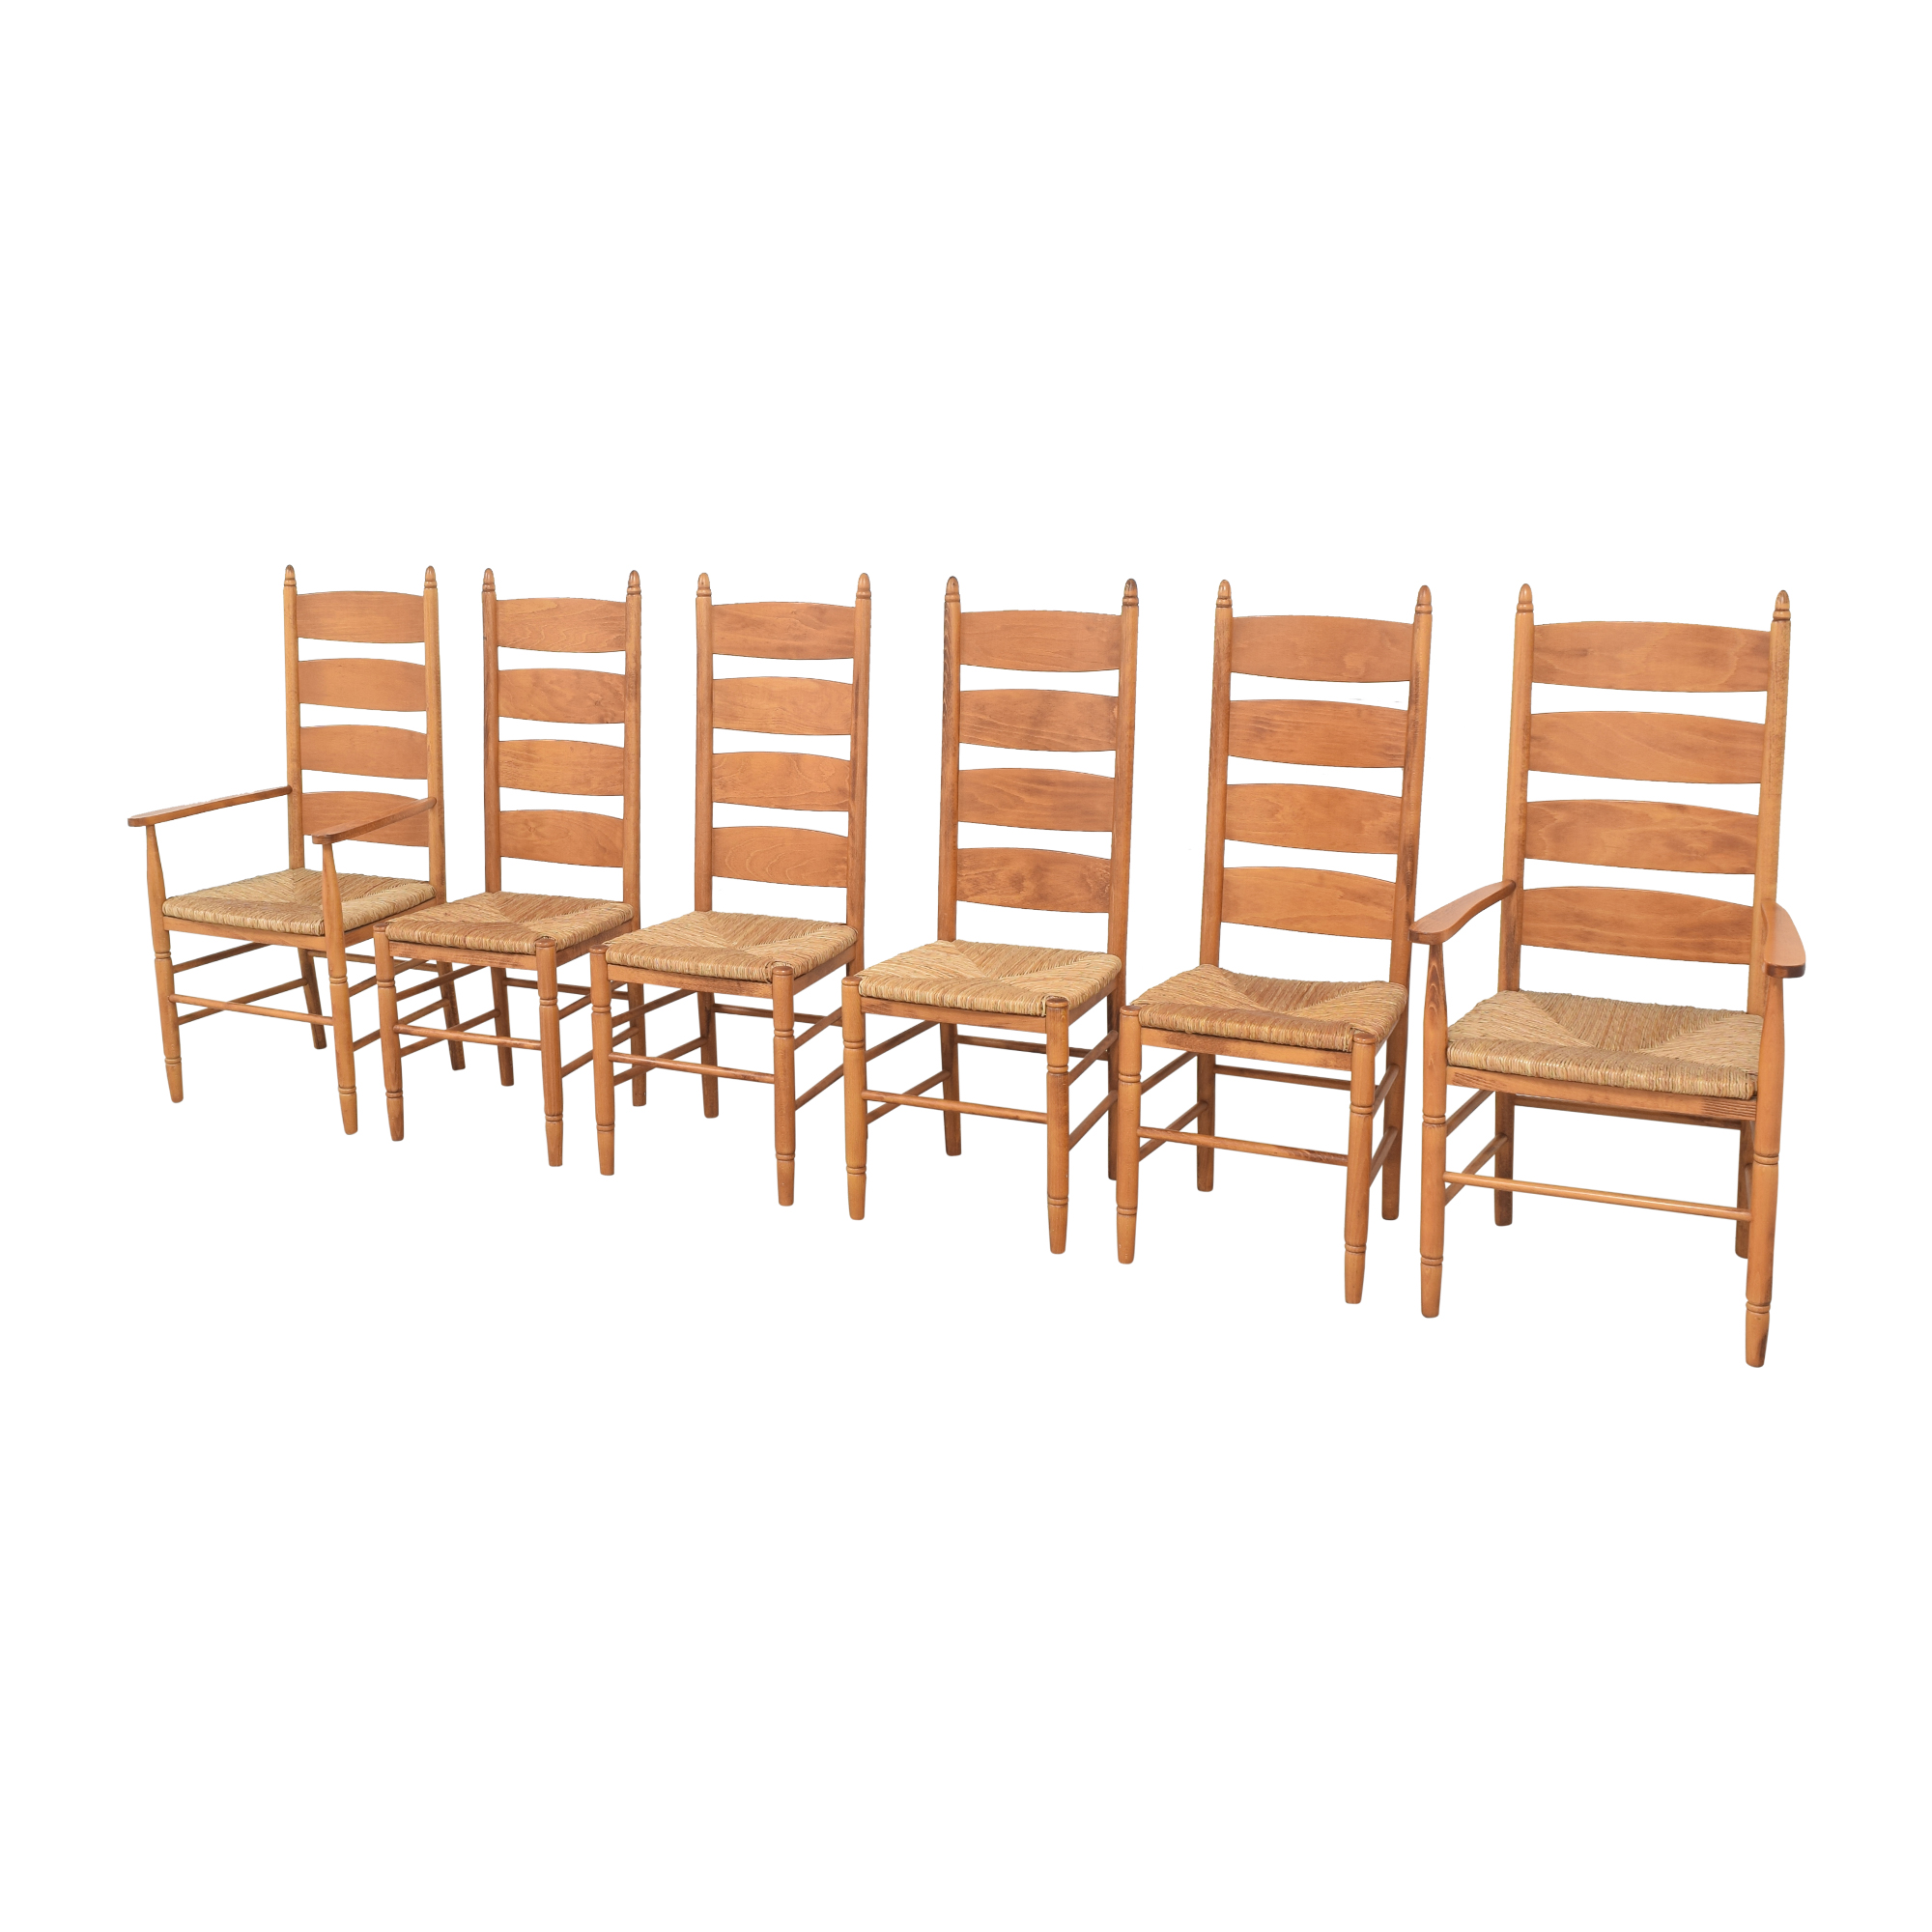 Pottery Barn Pottery Barn Ladder Back Dining Chairs nj